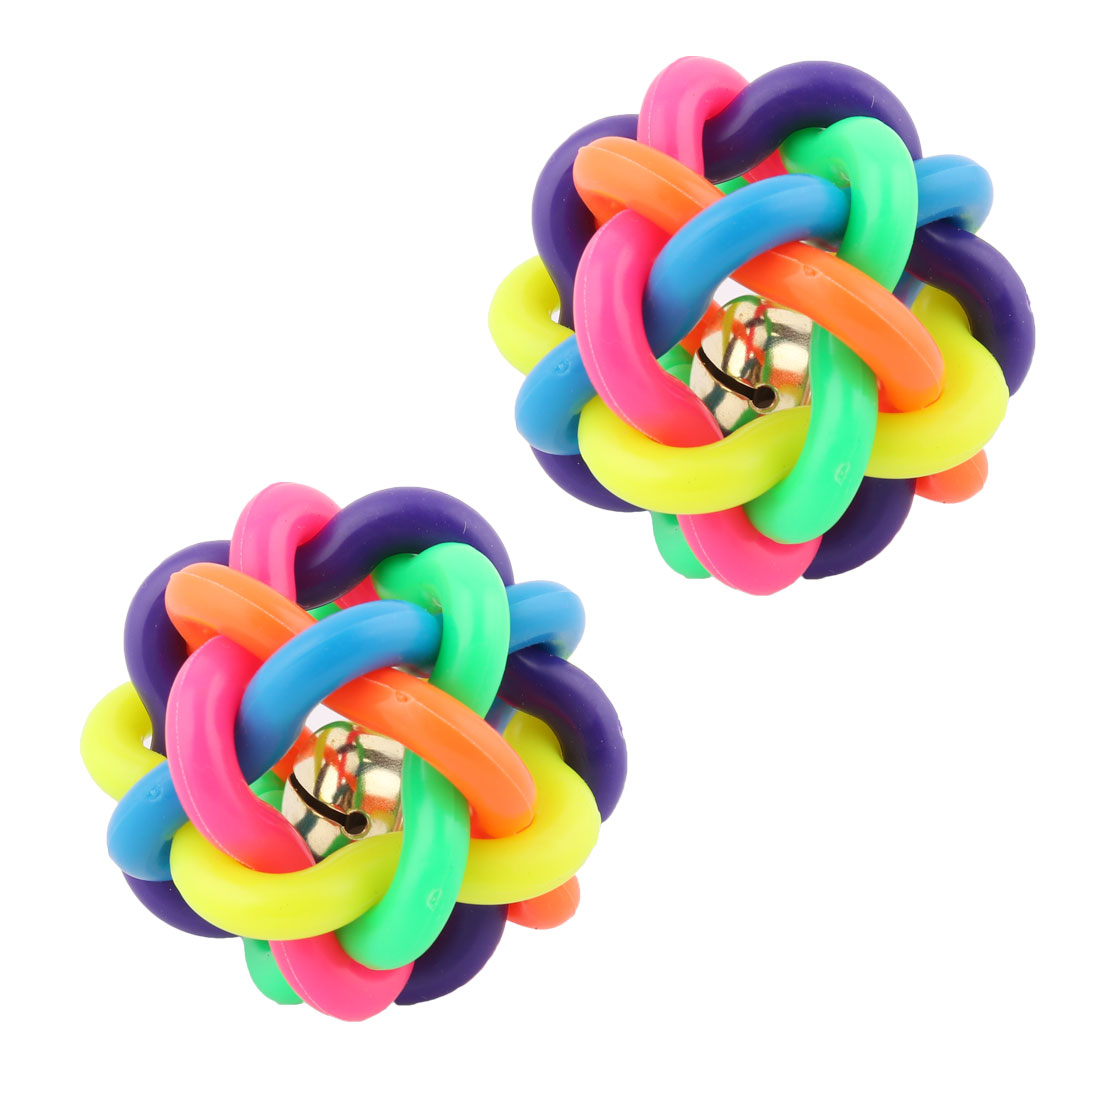 Pet Dog Puppy Braided Ball Bell Rope Chew Toy Multicolor 2.4 Inch Dia